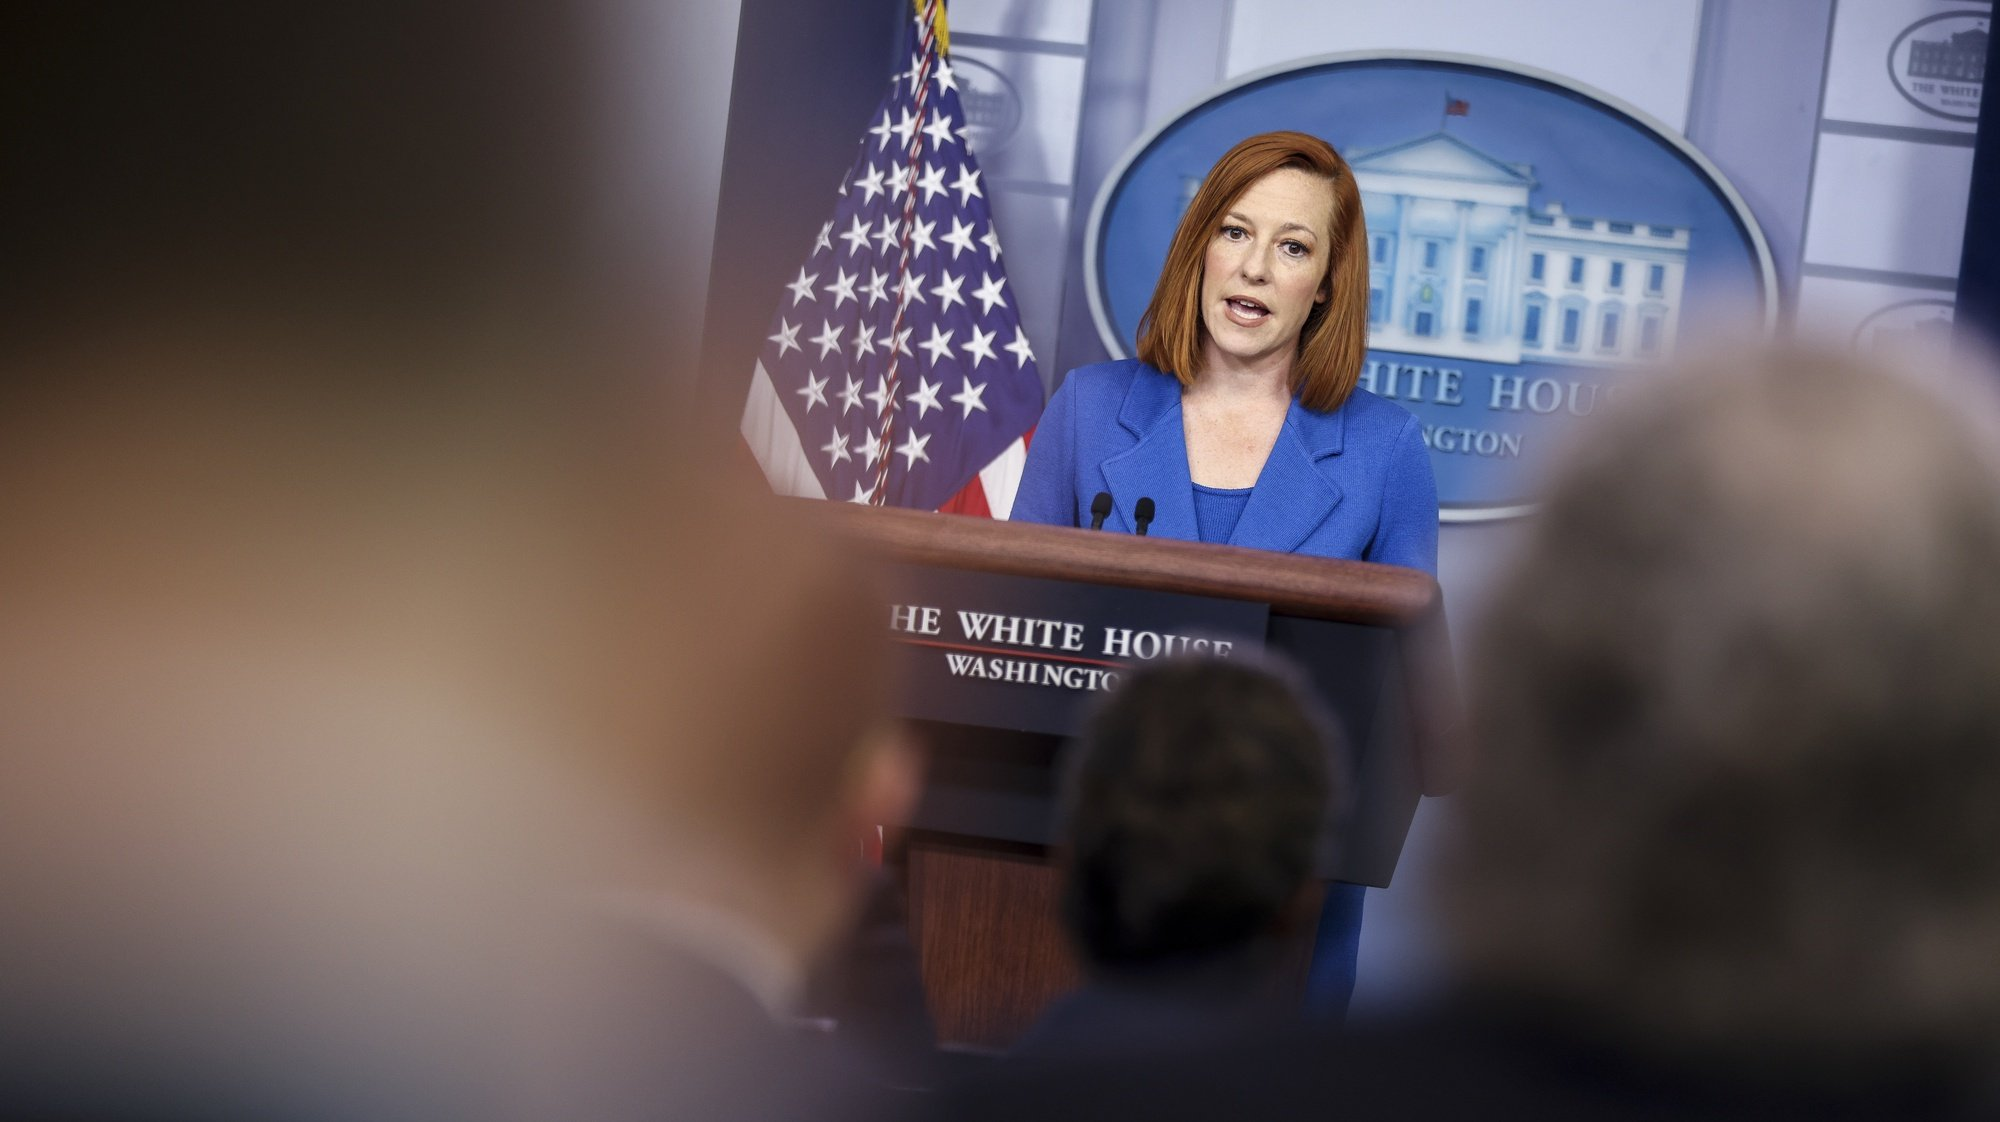 epa09225492 White House Press Secretary Jen Psaki talks to reporters during the daily press briefing in the Brady Press Briefing Room of the White House in Washington, DC, USA, 24 May 2021.  EPA/Oliver Contreras / POOL